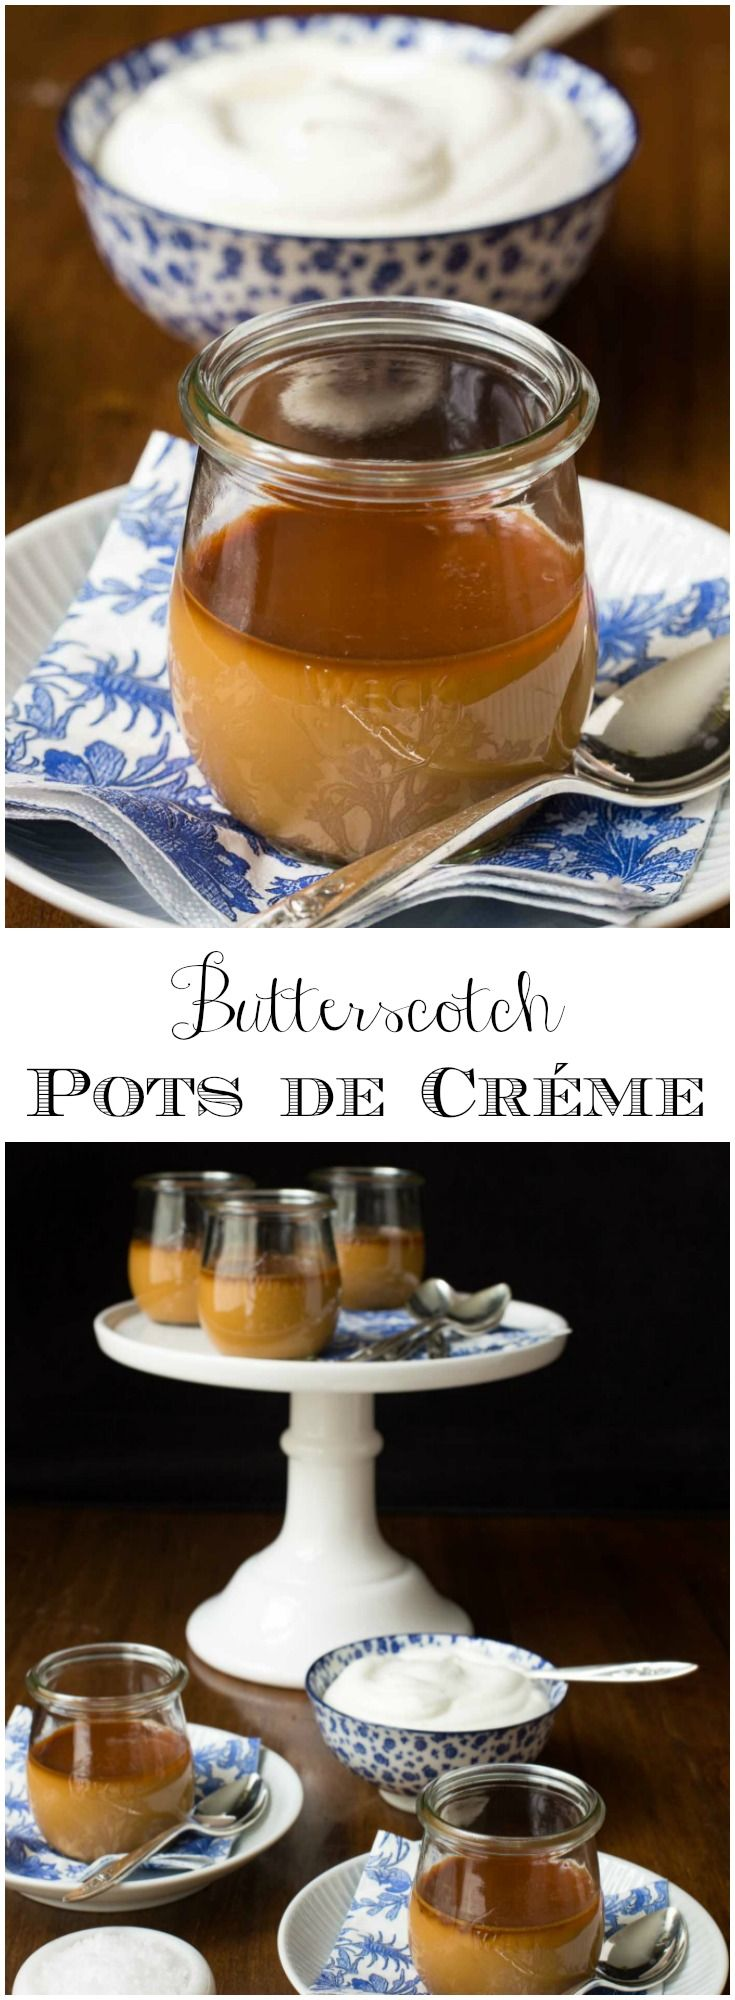 An elegant, French-inspired, make ahead dessert that always brings rave reviews. It's also crazy delicious! via @cafesucrefarine